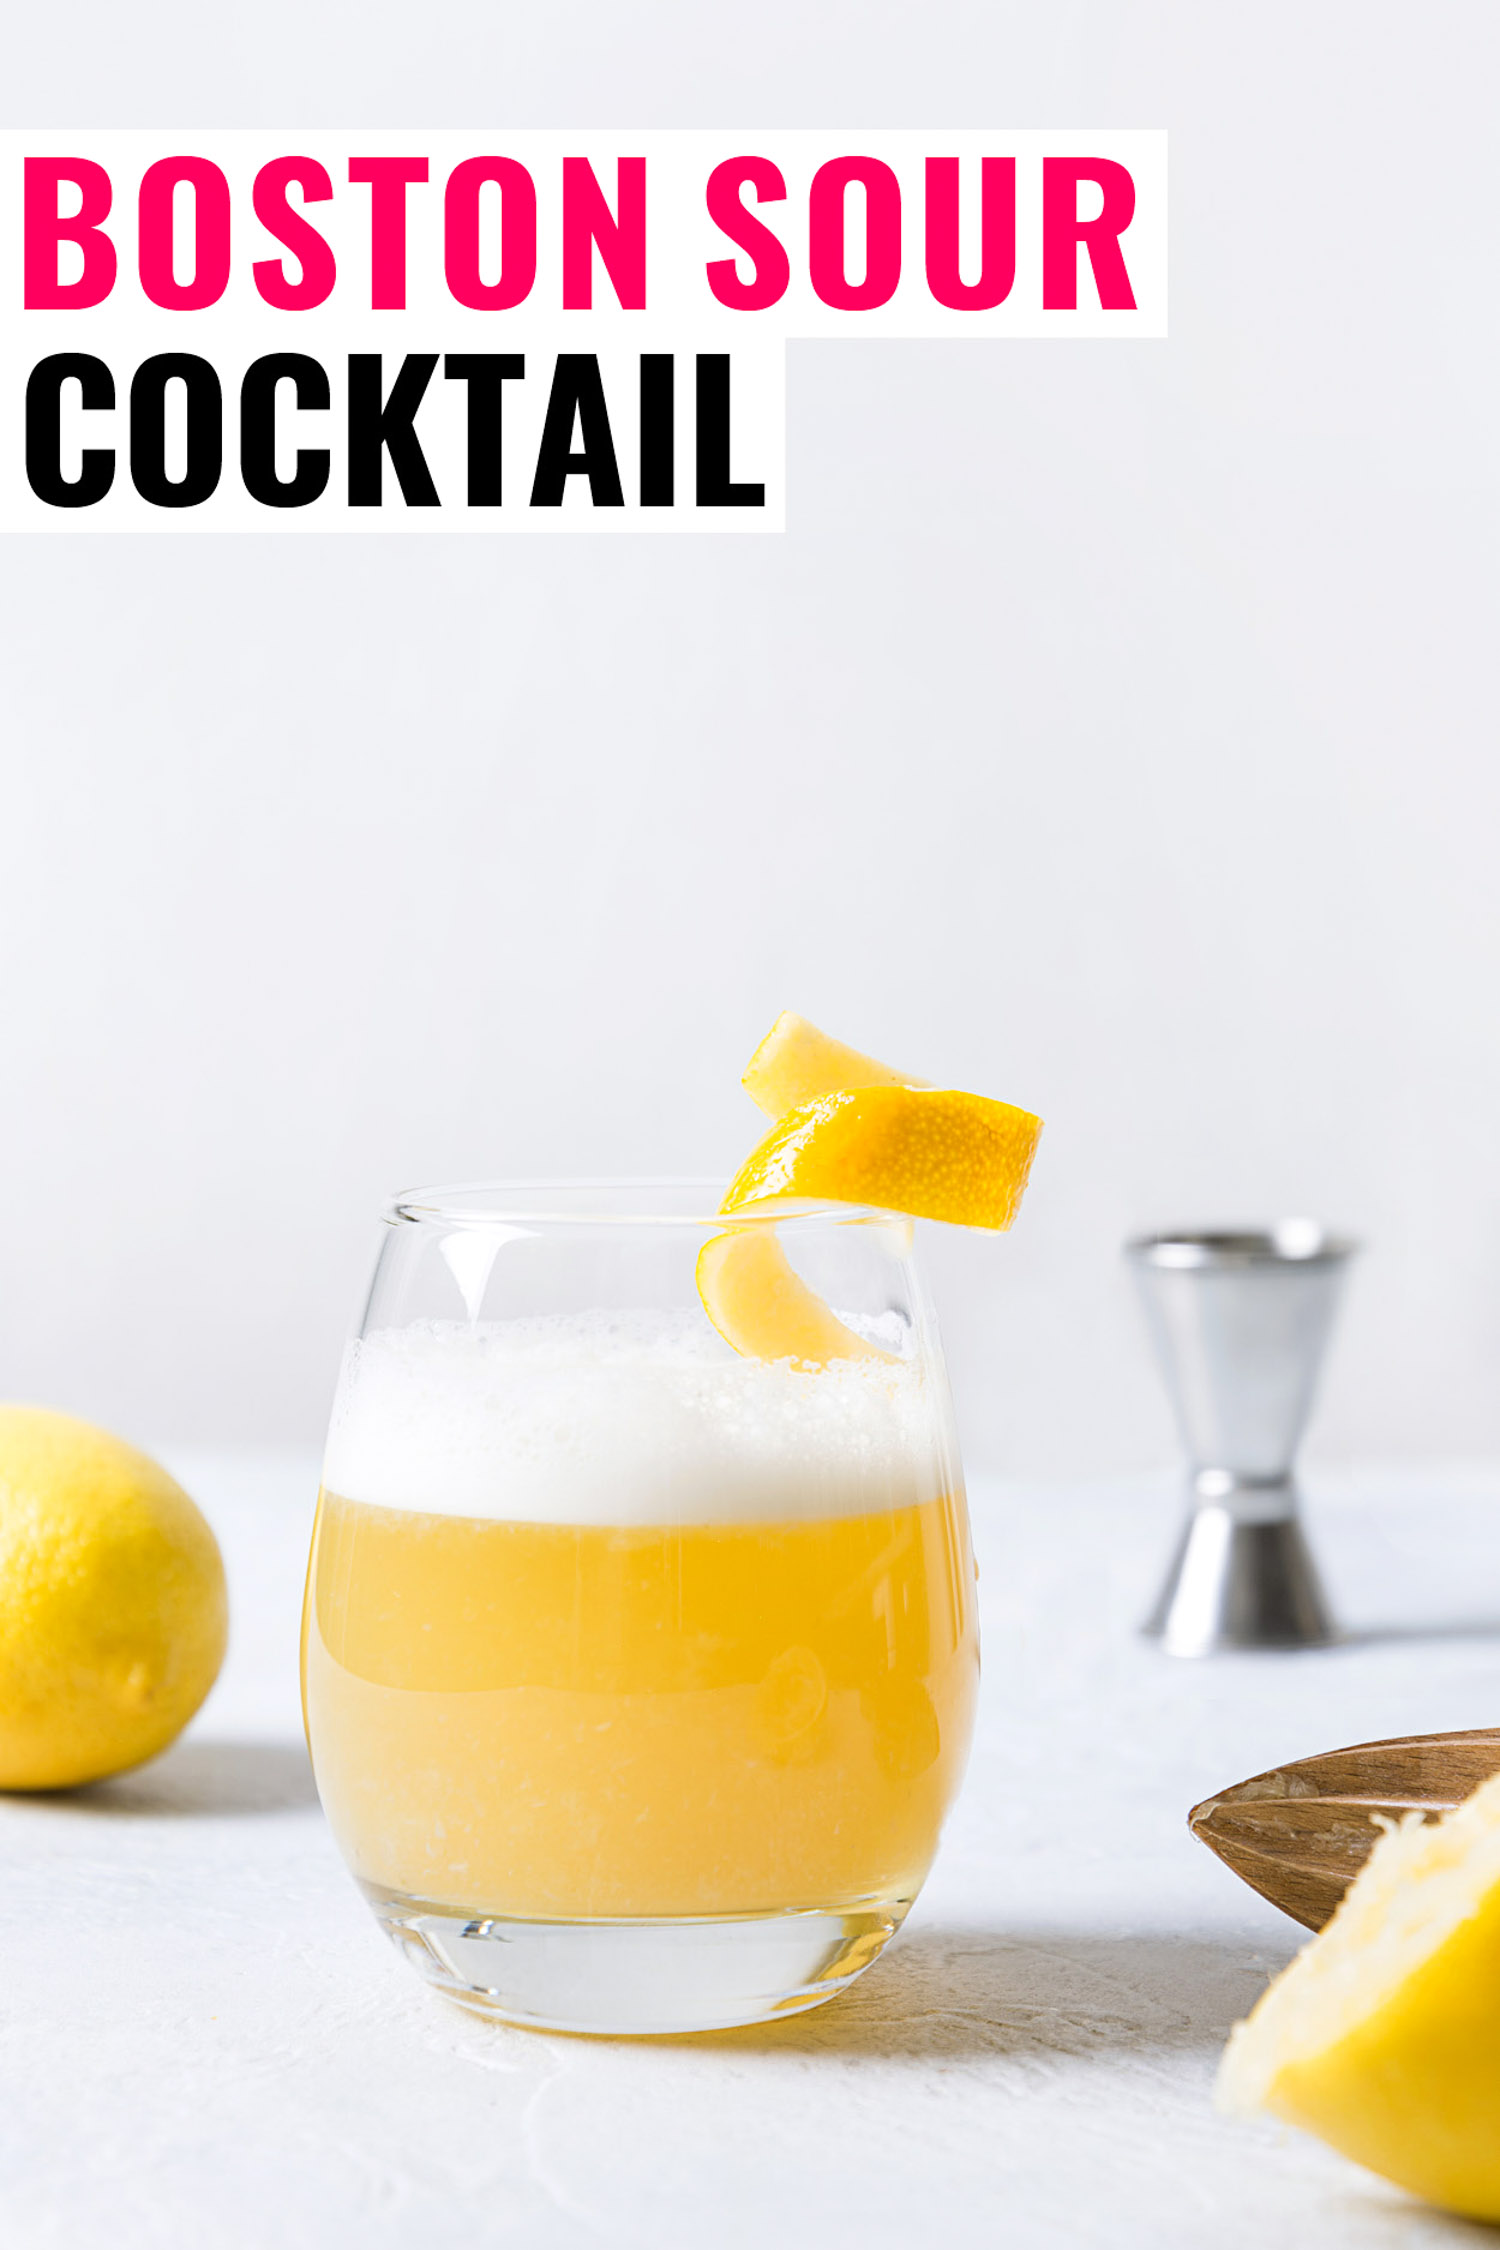 Boston sour cocktail - bourbon with lemon juice, sugar syrup and egg white in glass. Vertical orientation.